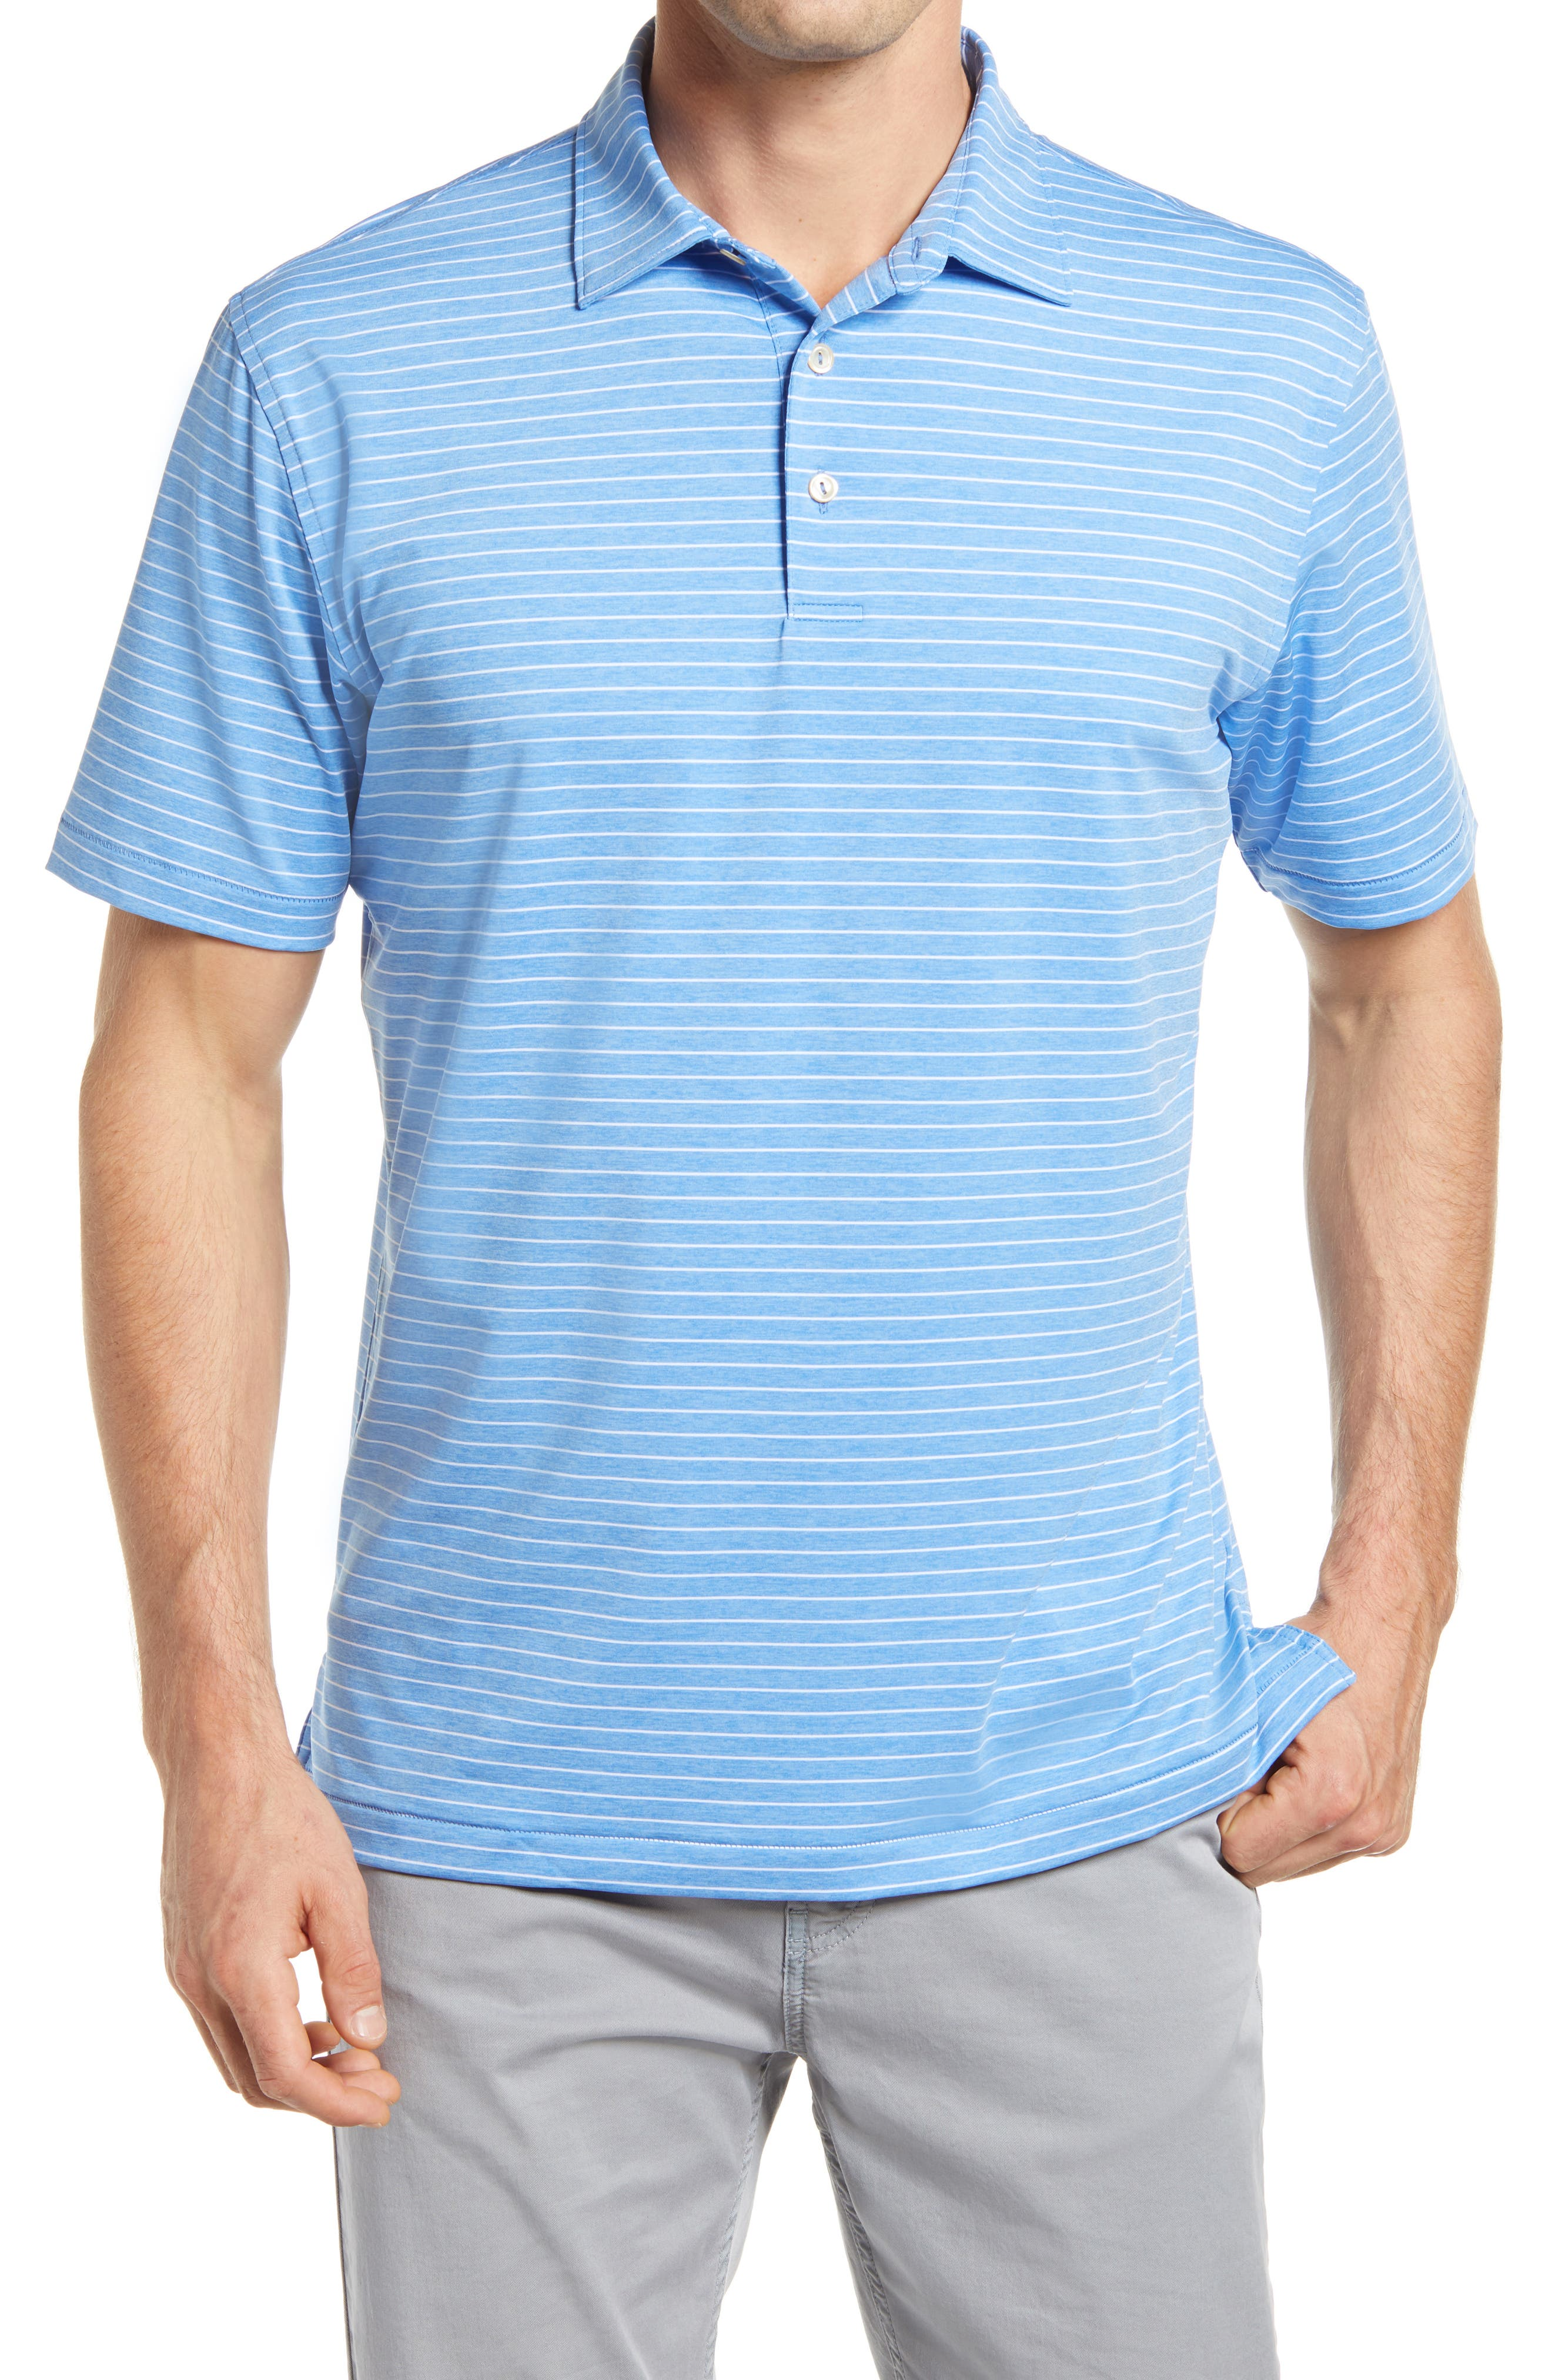 Stretchy, moisture-wicking fabric keeps up with you from links to lunch in a striped golf polo that resists odors and blocks harmful UV rays in any activity. Style Name: Peter Millar Crafty Pinstripe Performance Polo. Style Number: 6089769. Available in stores.